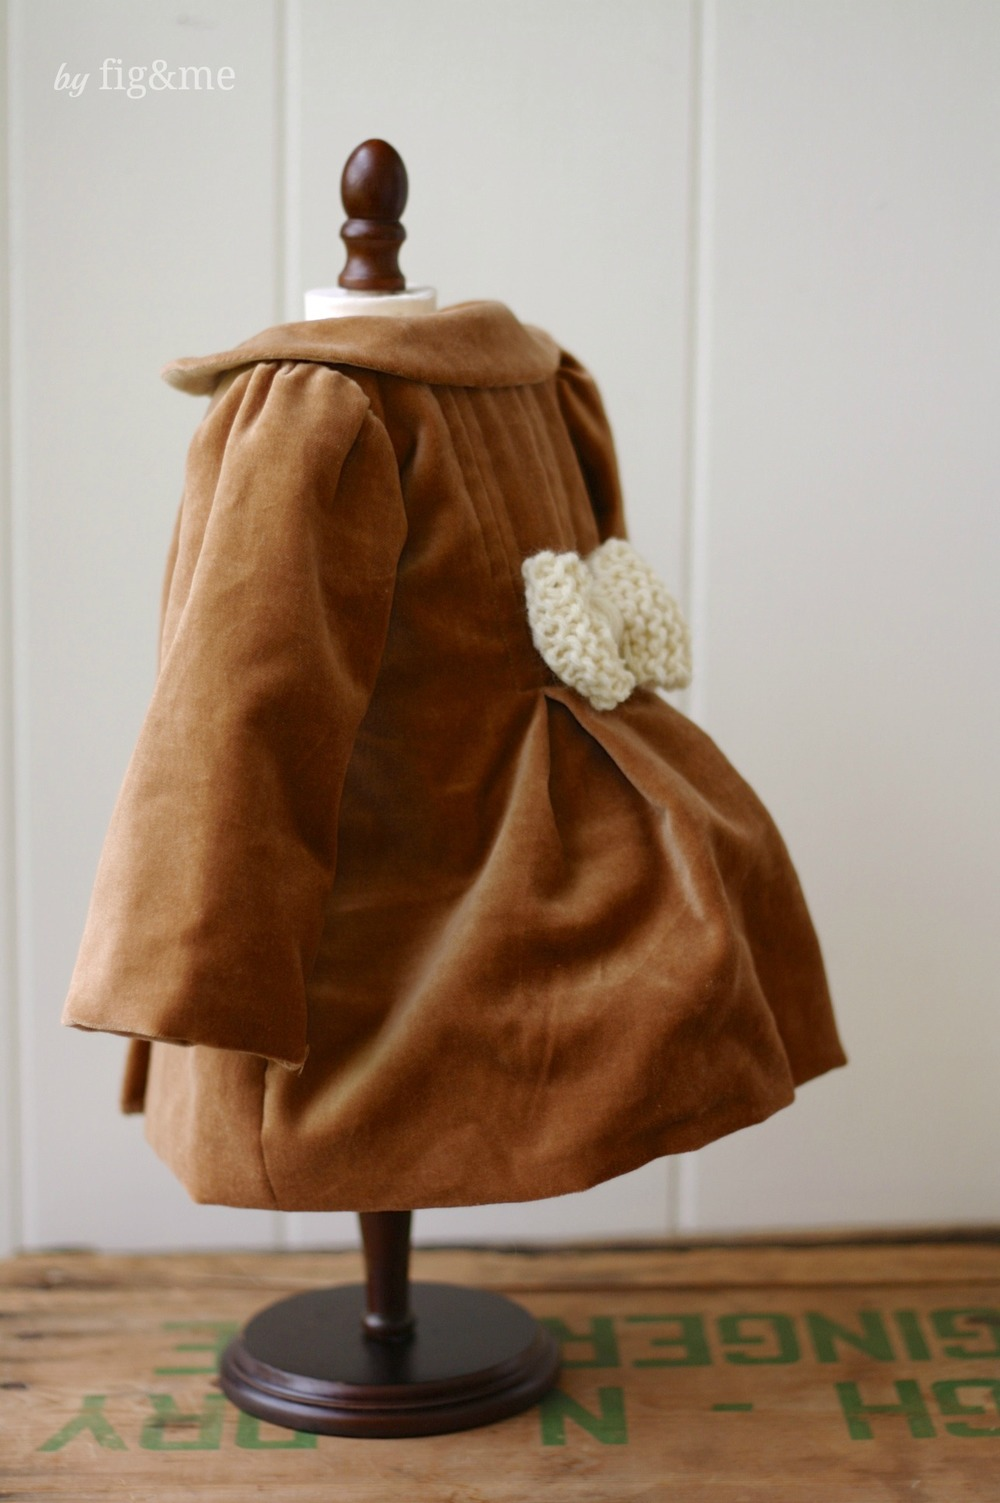 Handmade doll velveteen coat, by Fig and me.